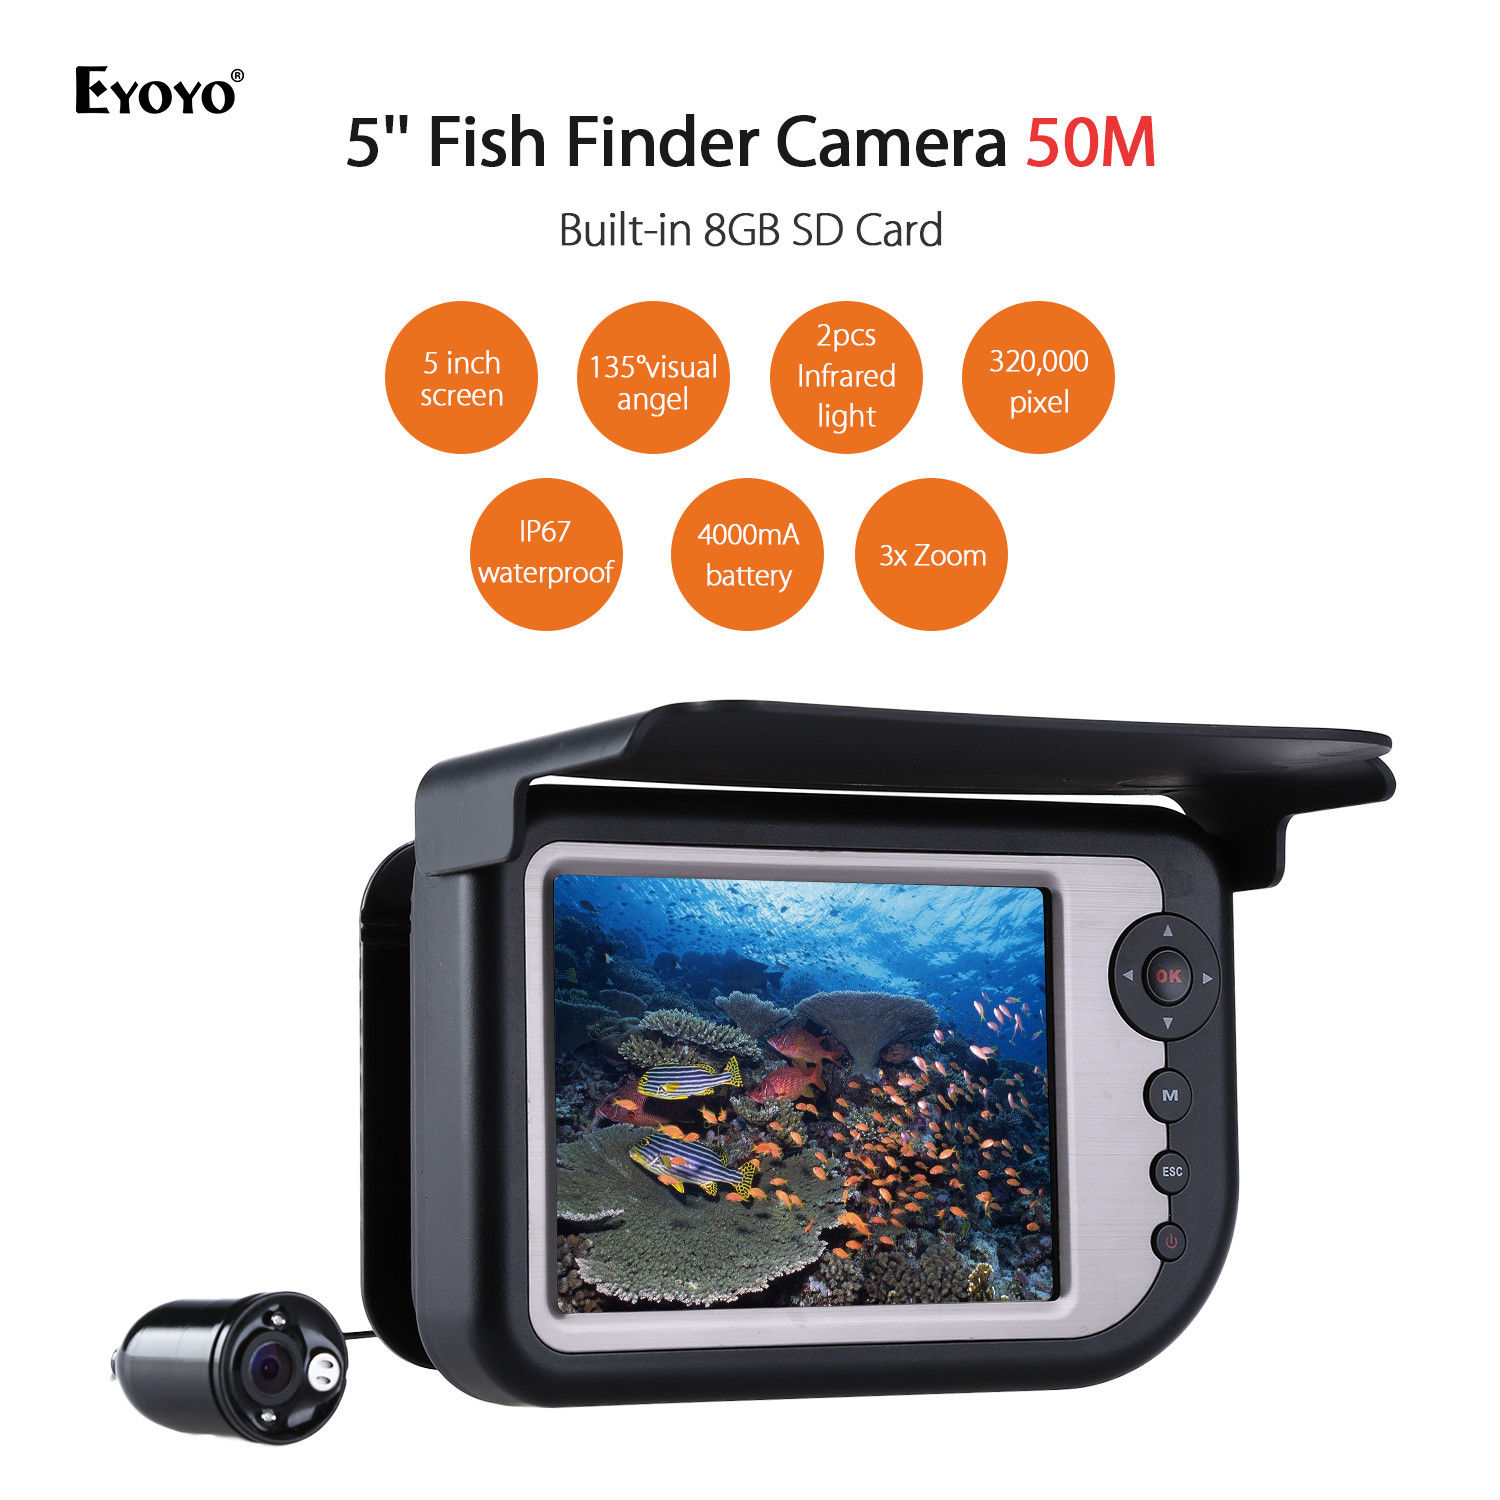 EYOYO LQ-5050DR 50M 5 Infrared Fishfinder Camera Underwater Fishing DVR LCD Monitor Colour Display 135degree Wide Angle